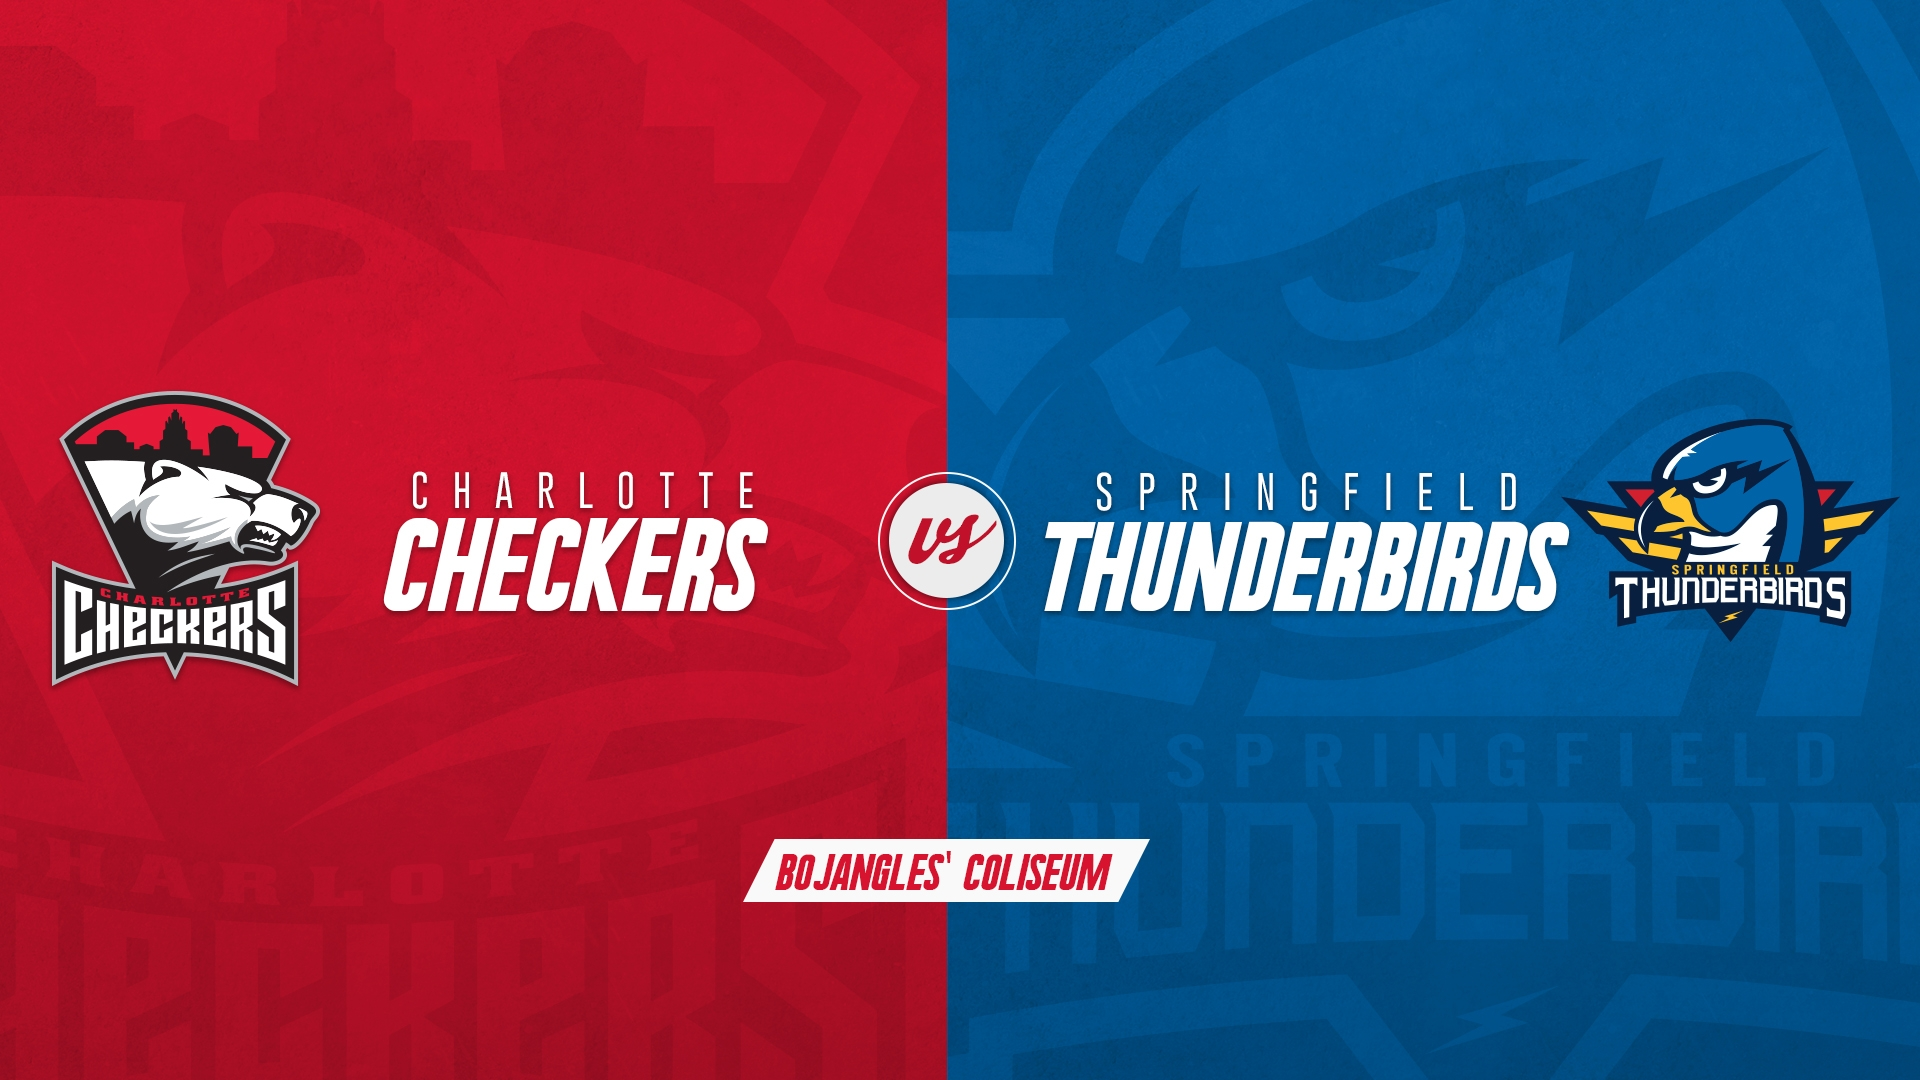 Charlotte Checkers vs. Springfield Thunderbirds